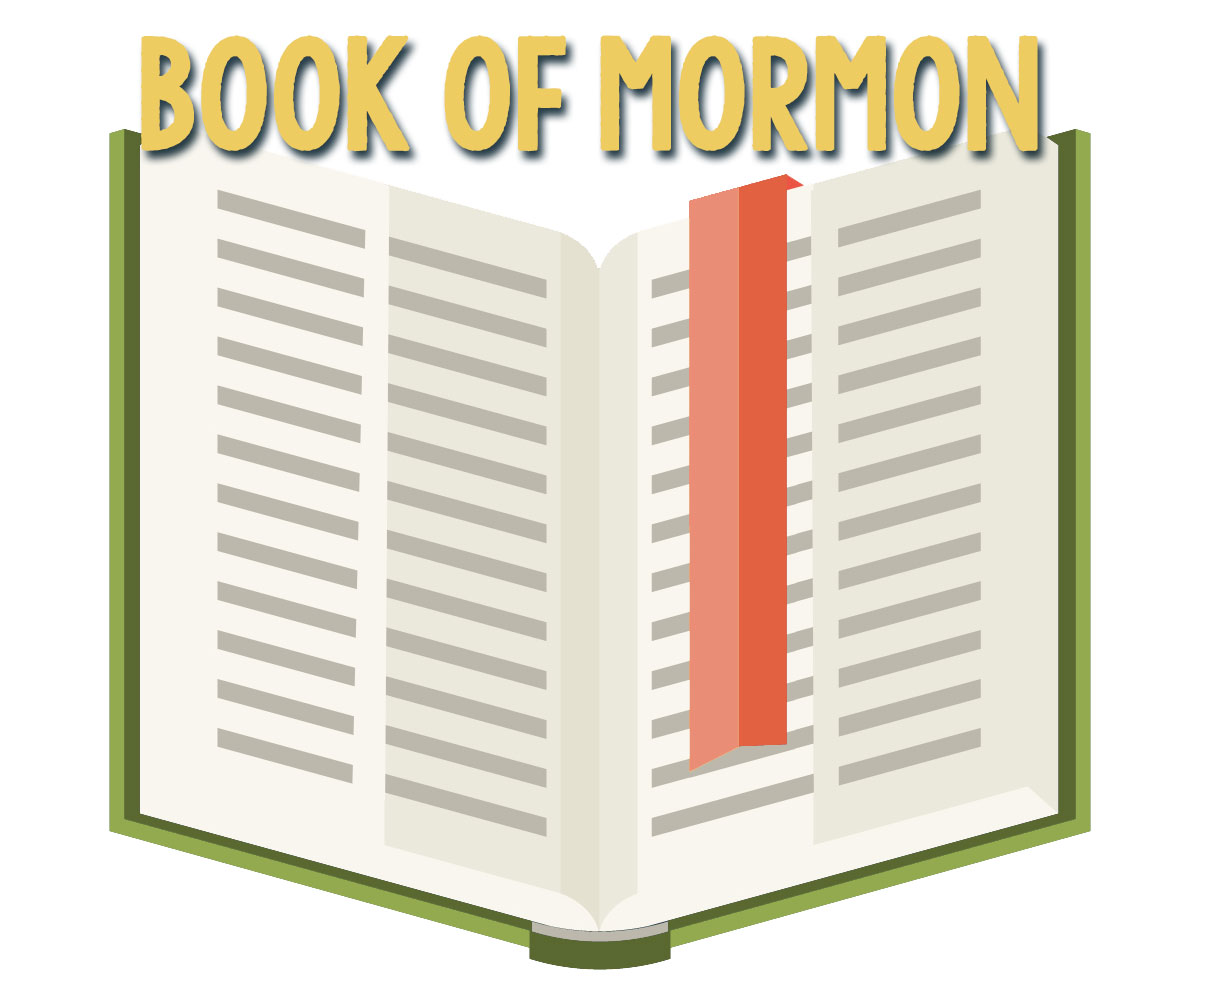 Seminary Book of Mormon Resources